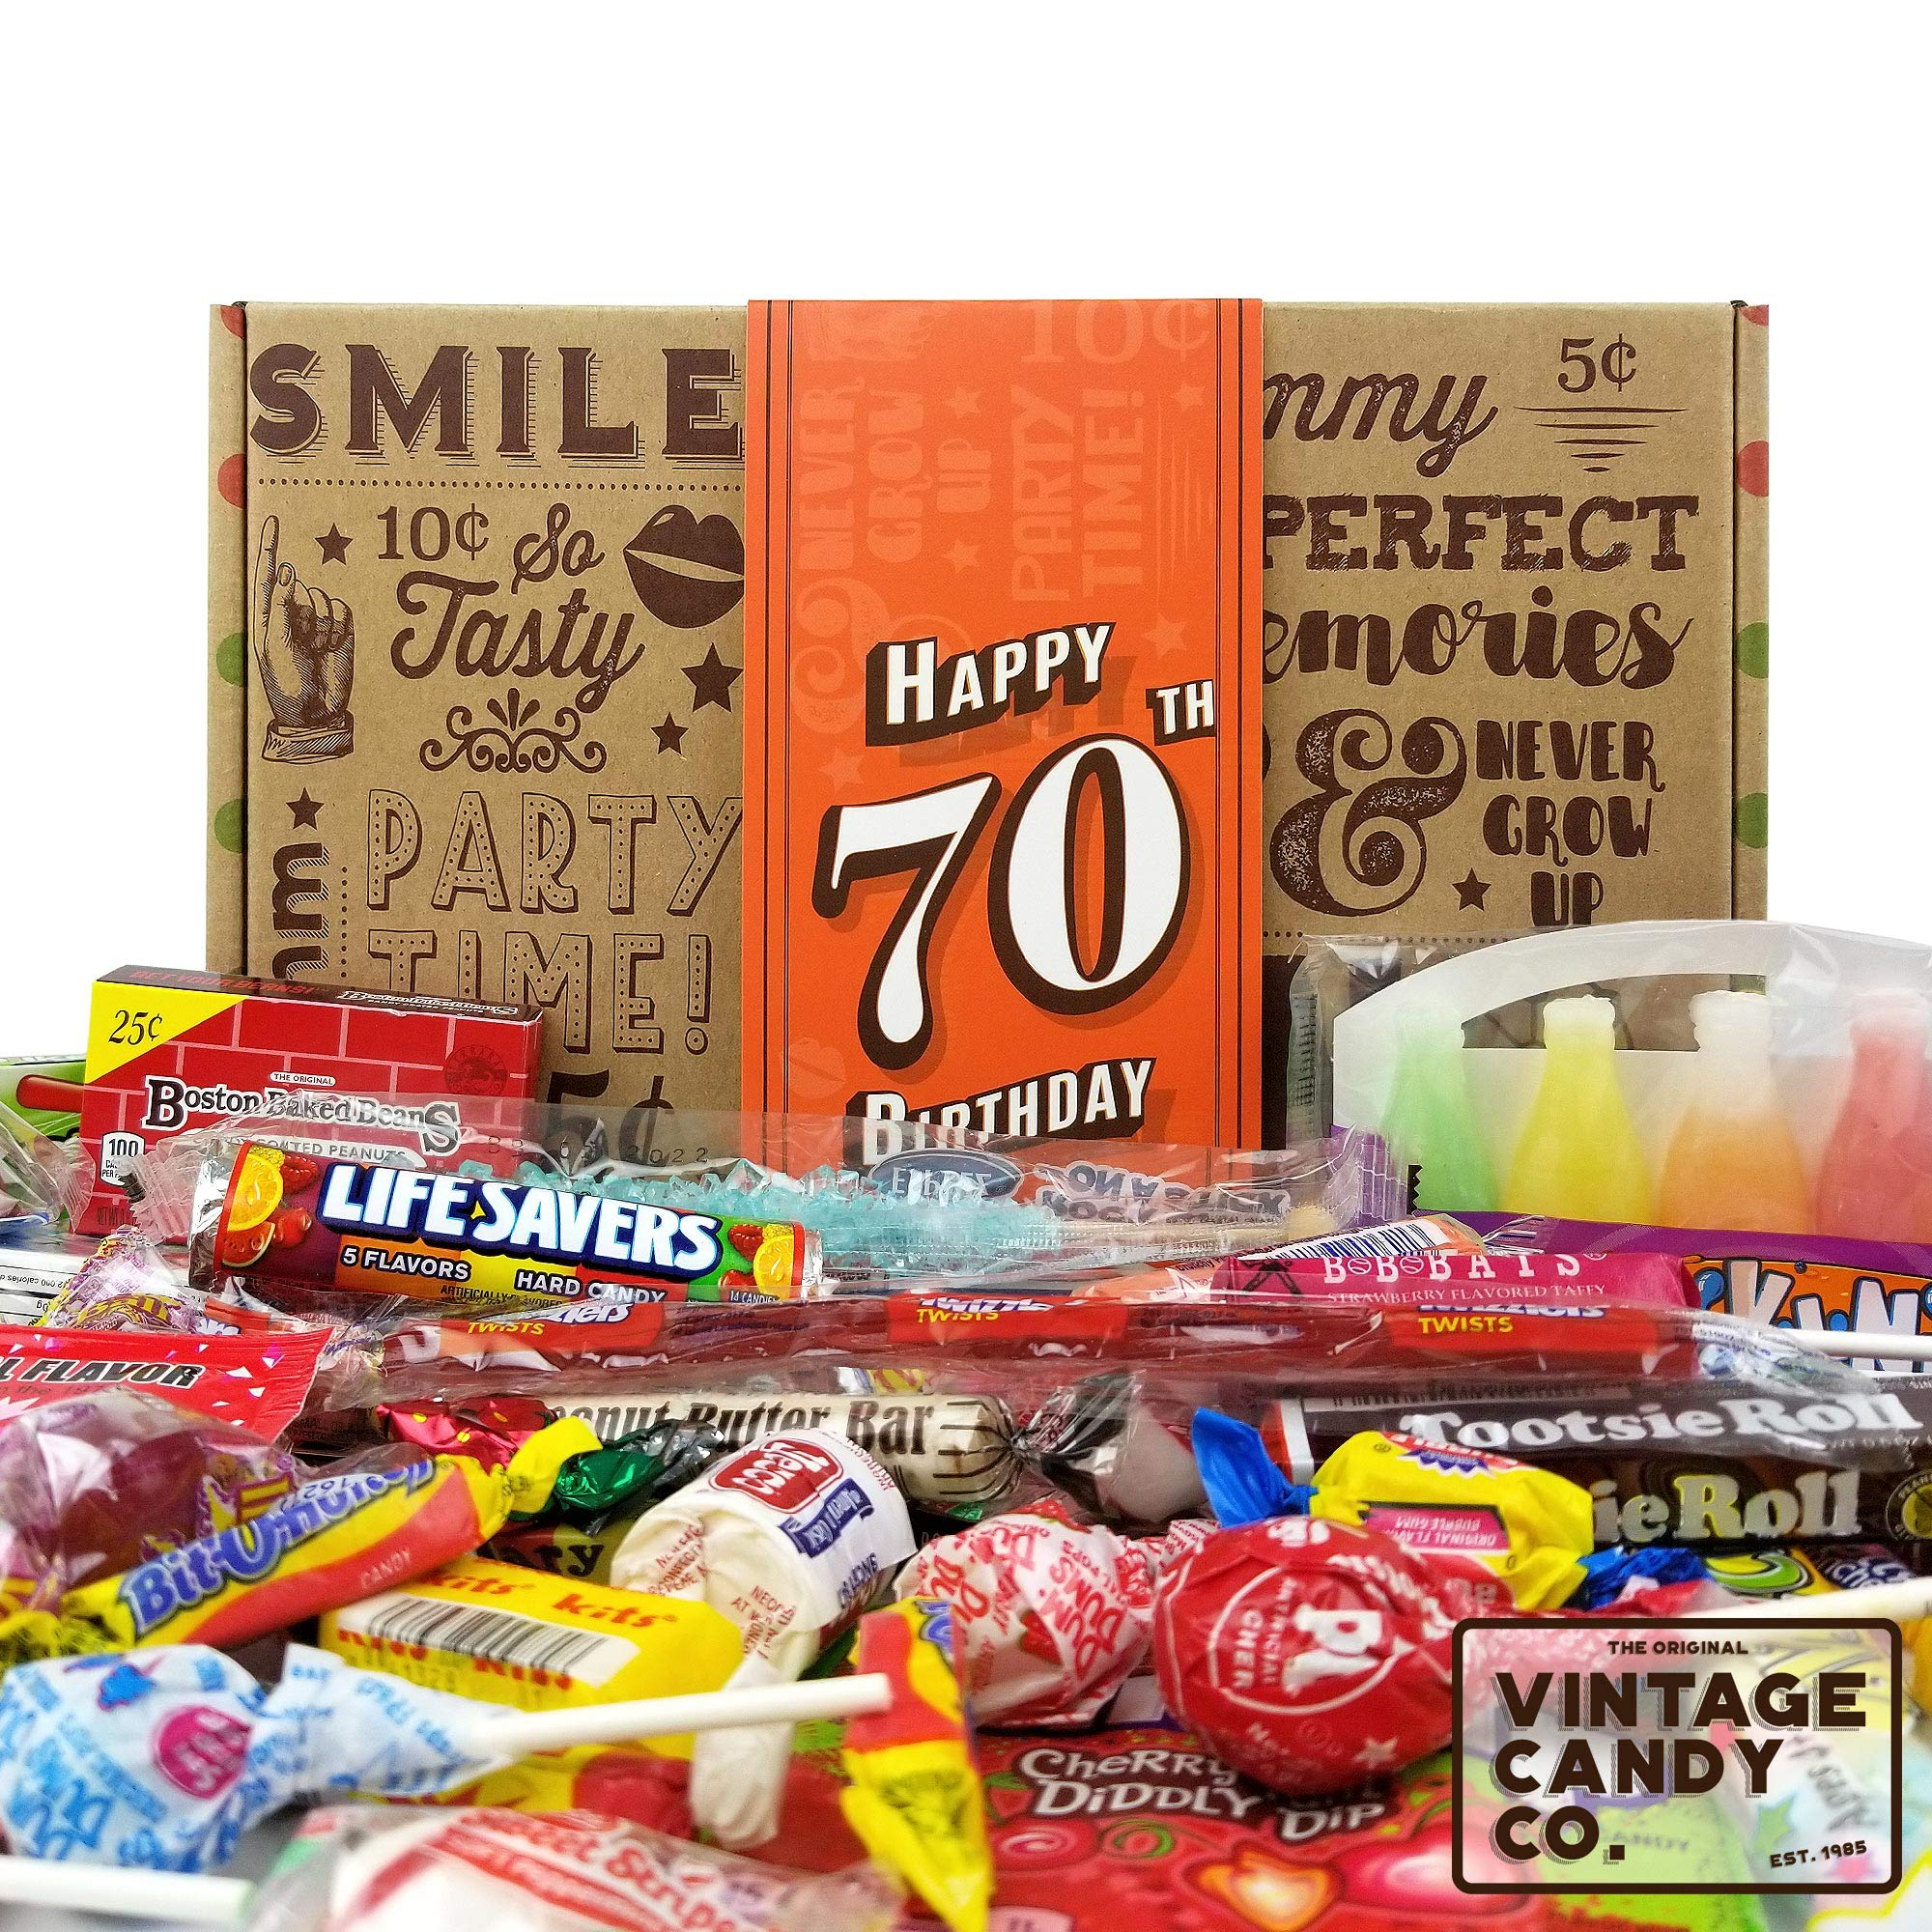 VINTAGE CANDY CO. 70TH BIRTHDAY RETRO CANDY GIFT BOX - 1949 Decade Nostalgic Childhood Candies - Fun Gag Gift Basket for Milestone SEVENTIETH Birthday - PERFECT For Man Or Woman Turning 70 Years Old by Vintage Candy Co.